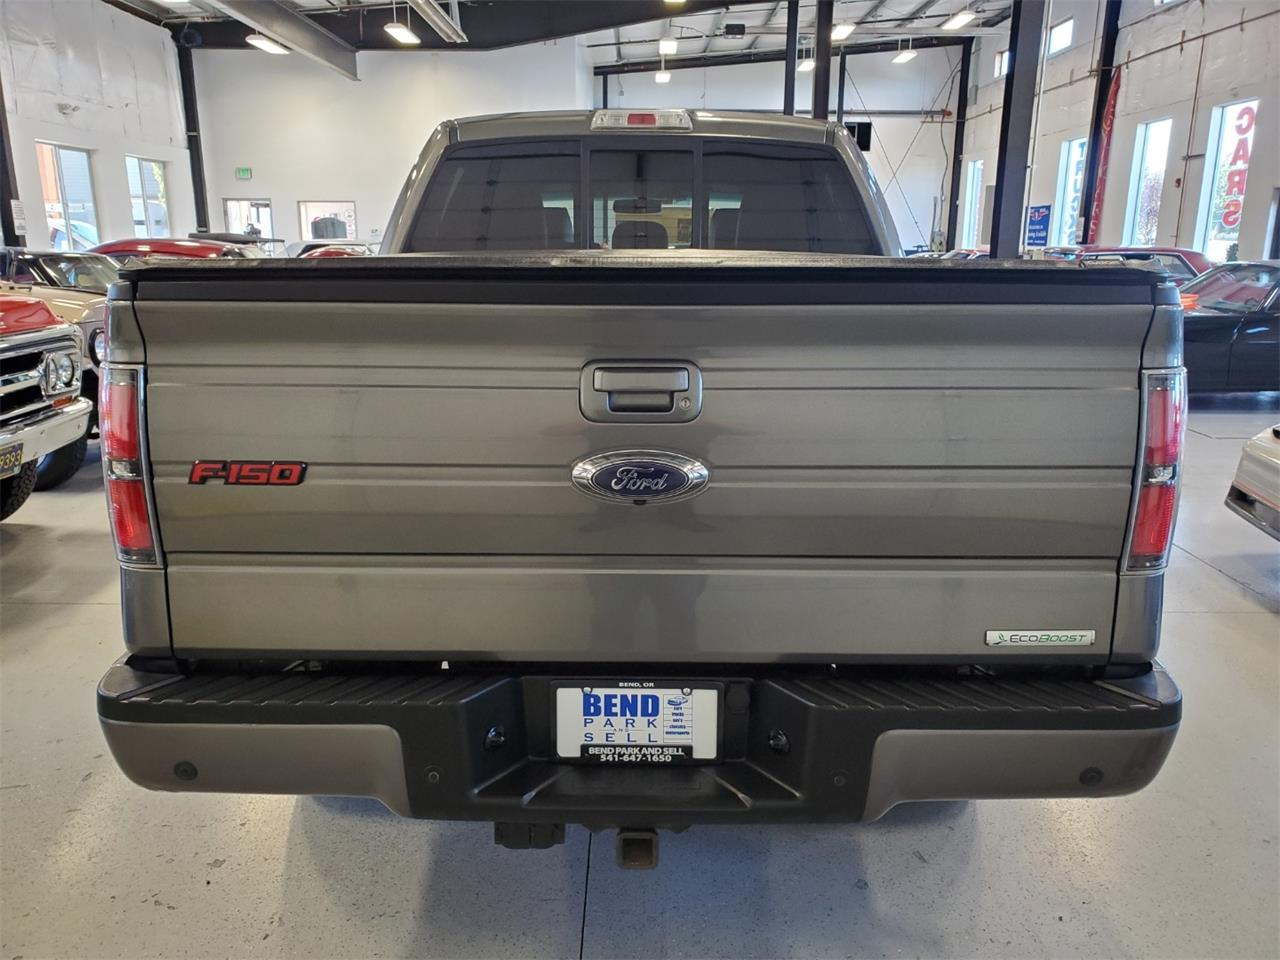 2013 Ford F150 (CC-1410679) for sale in Bend, Oregon